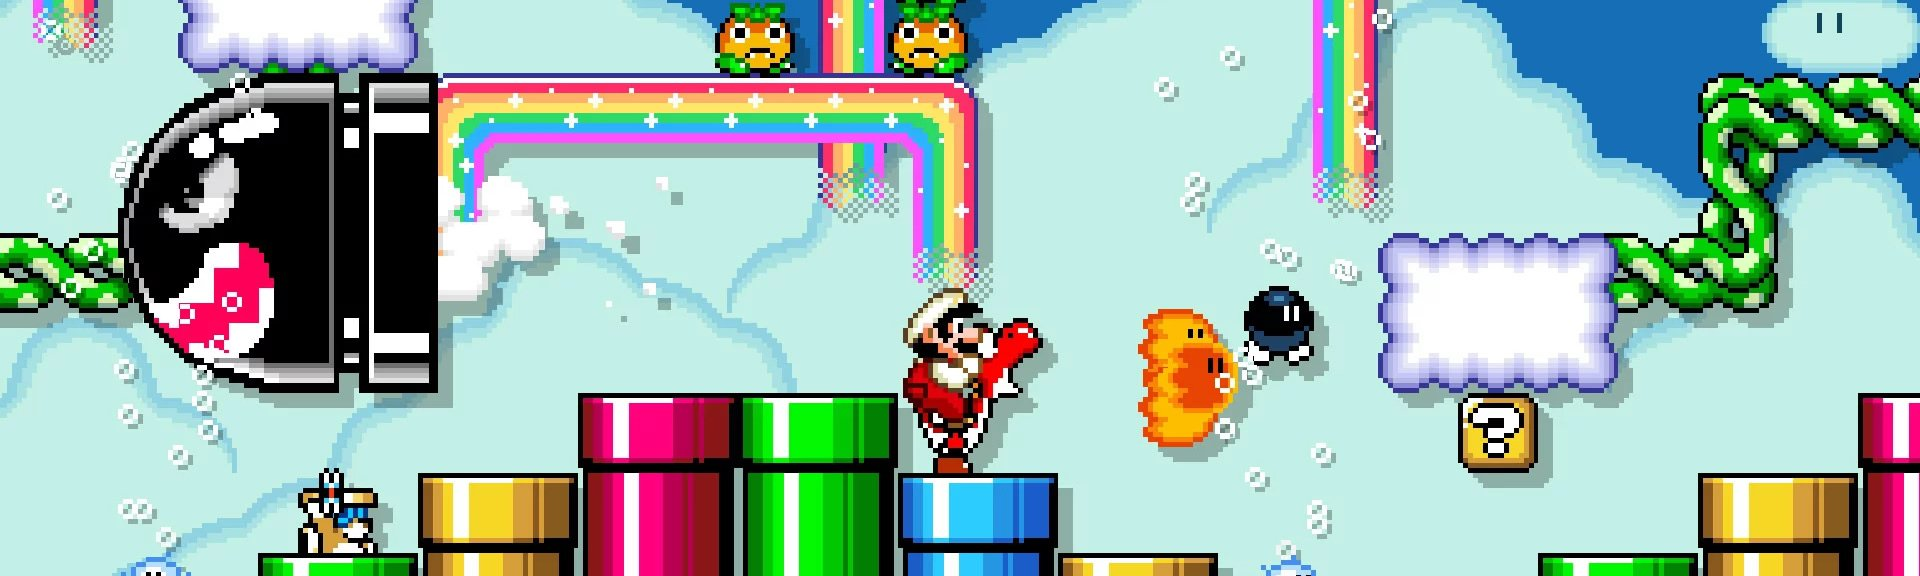 Super Mario Maker 2 guides wiki FAQ - Course World